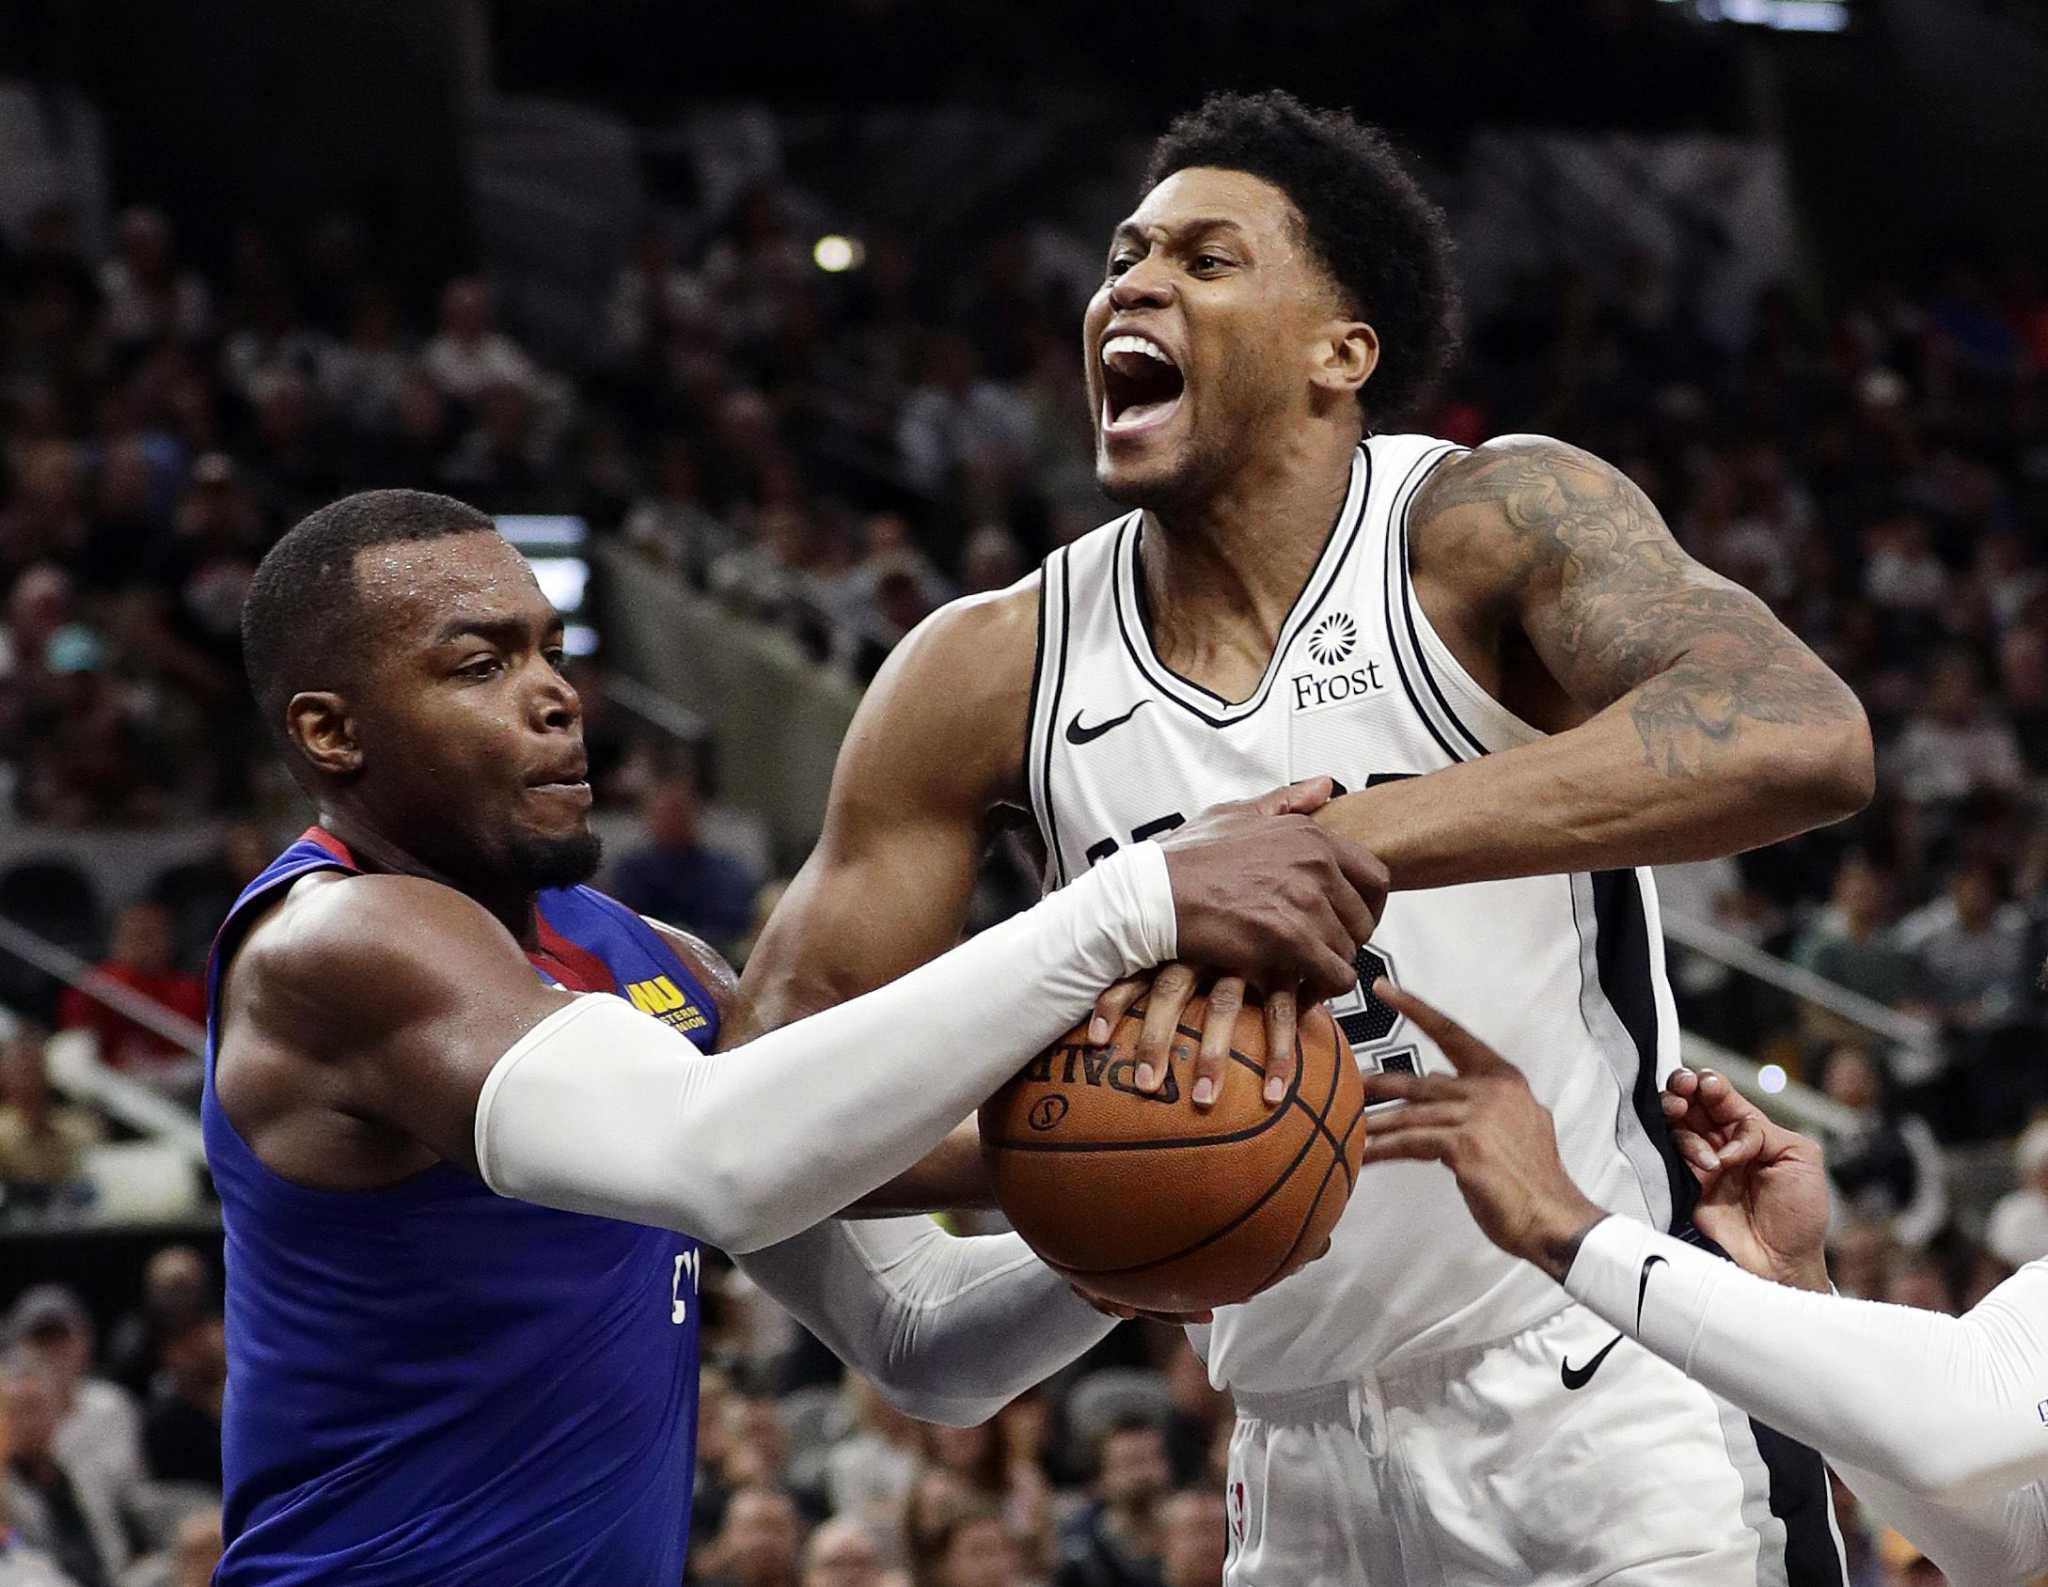 By pad or by paddle, Spurs need Gay to find his shot